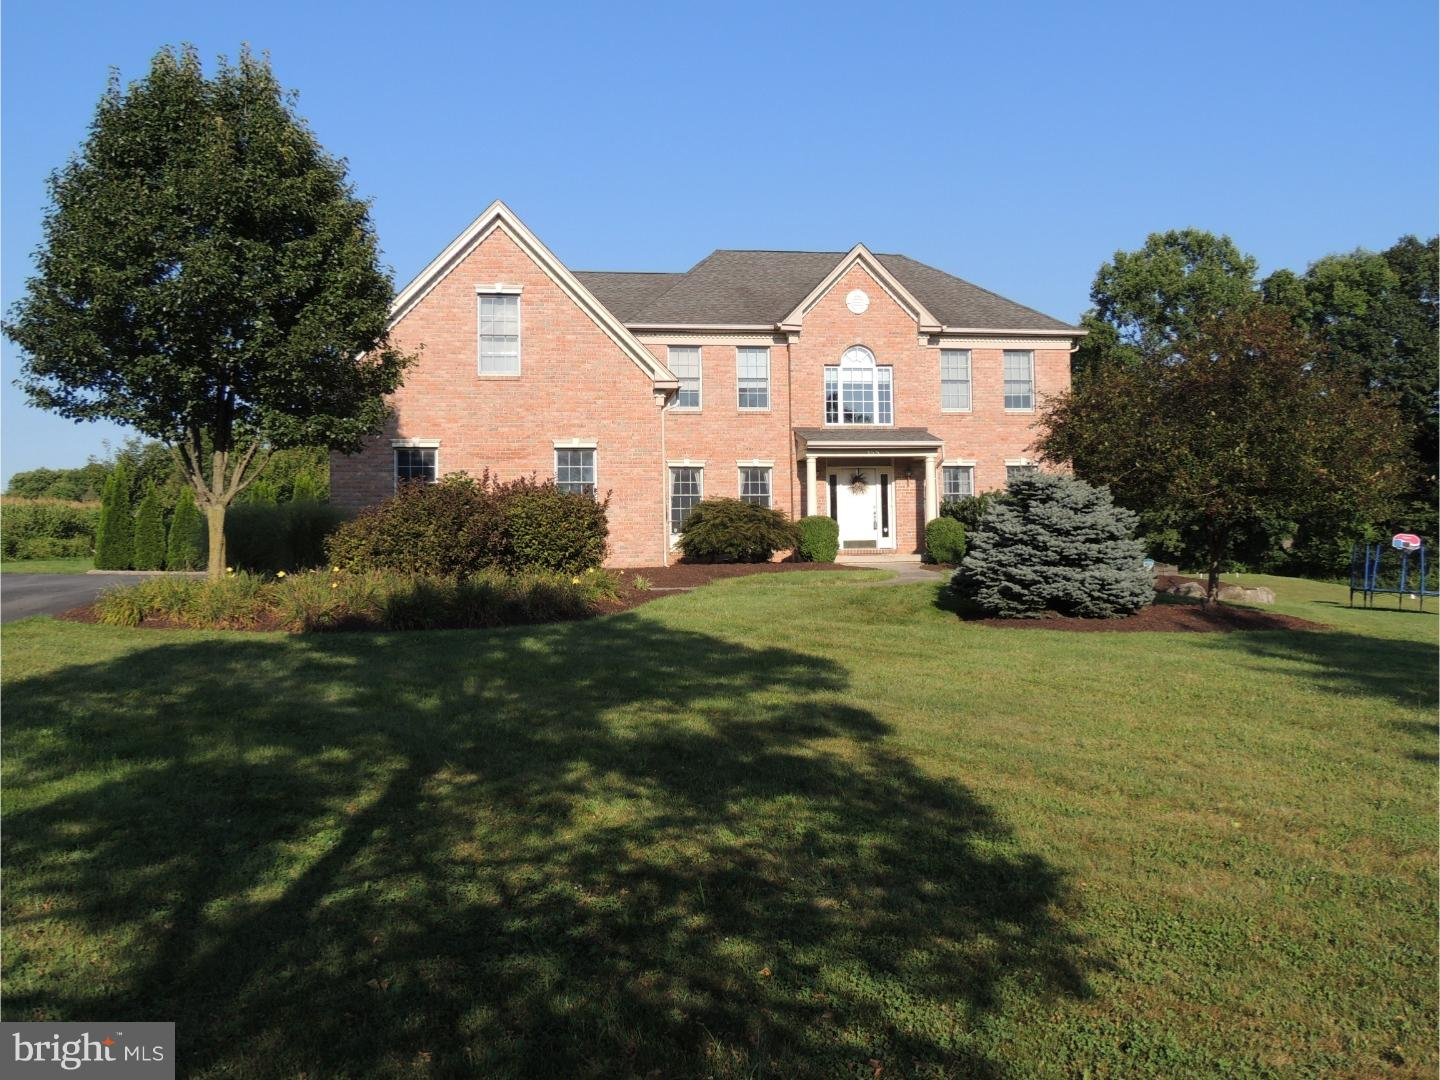 155 FOX RUN, WILIAMS TWP, PA 18042